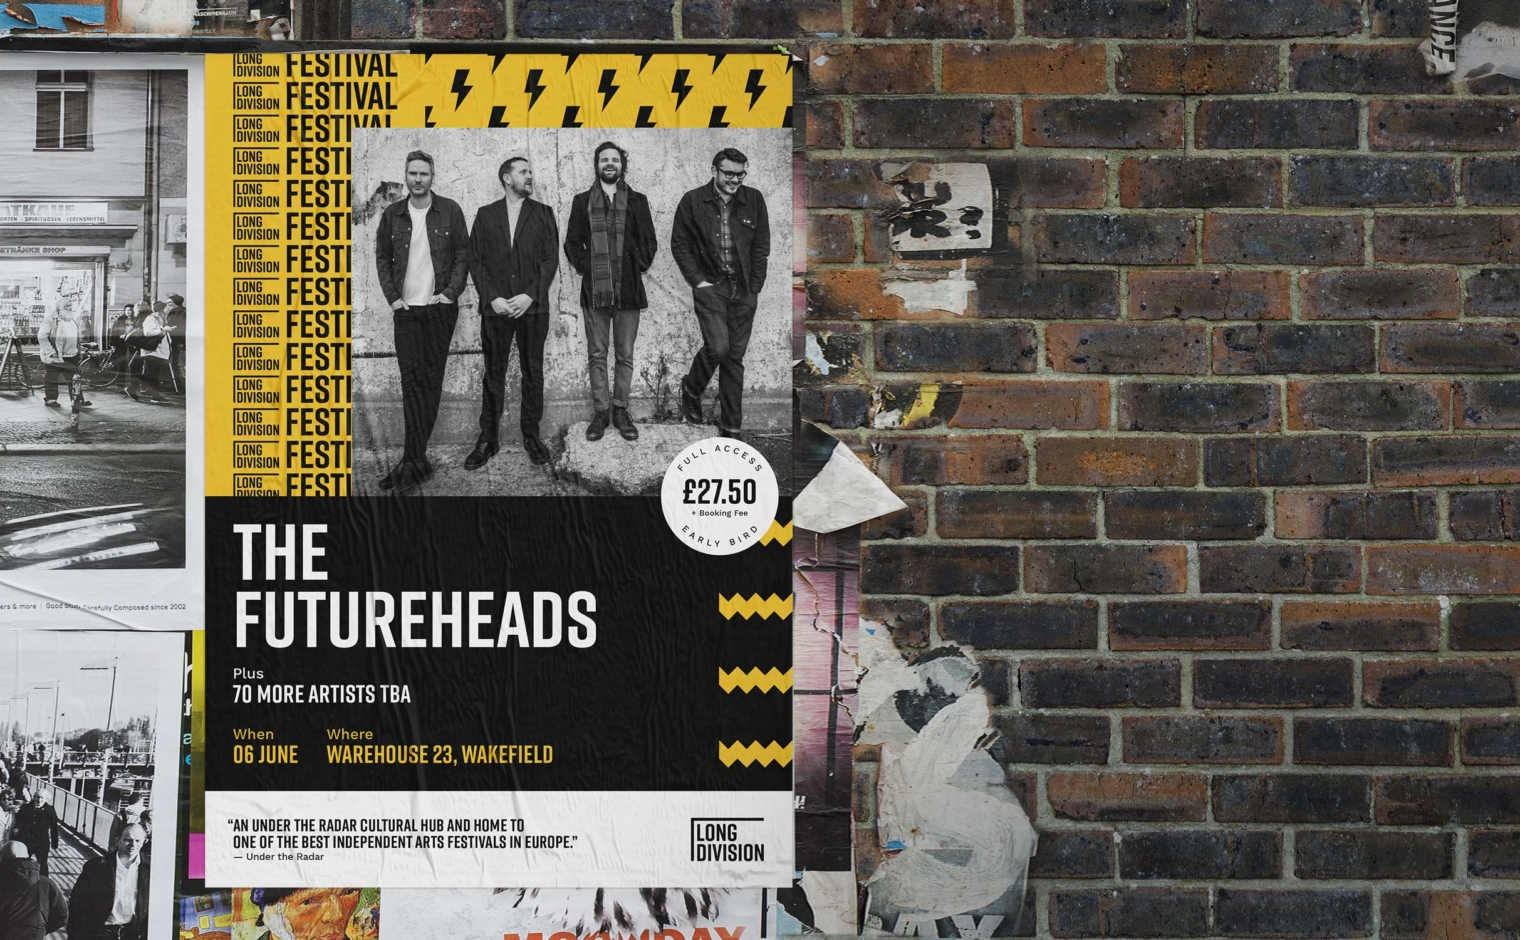 Long Division Festival poster for The Futureheads